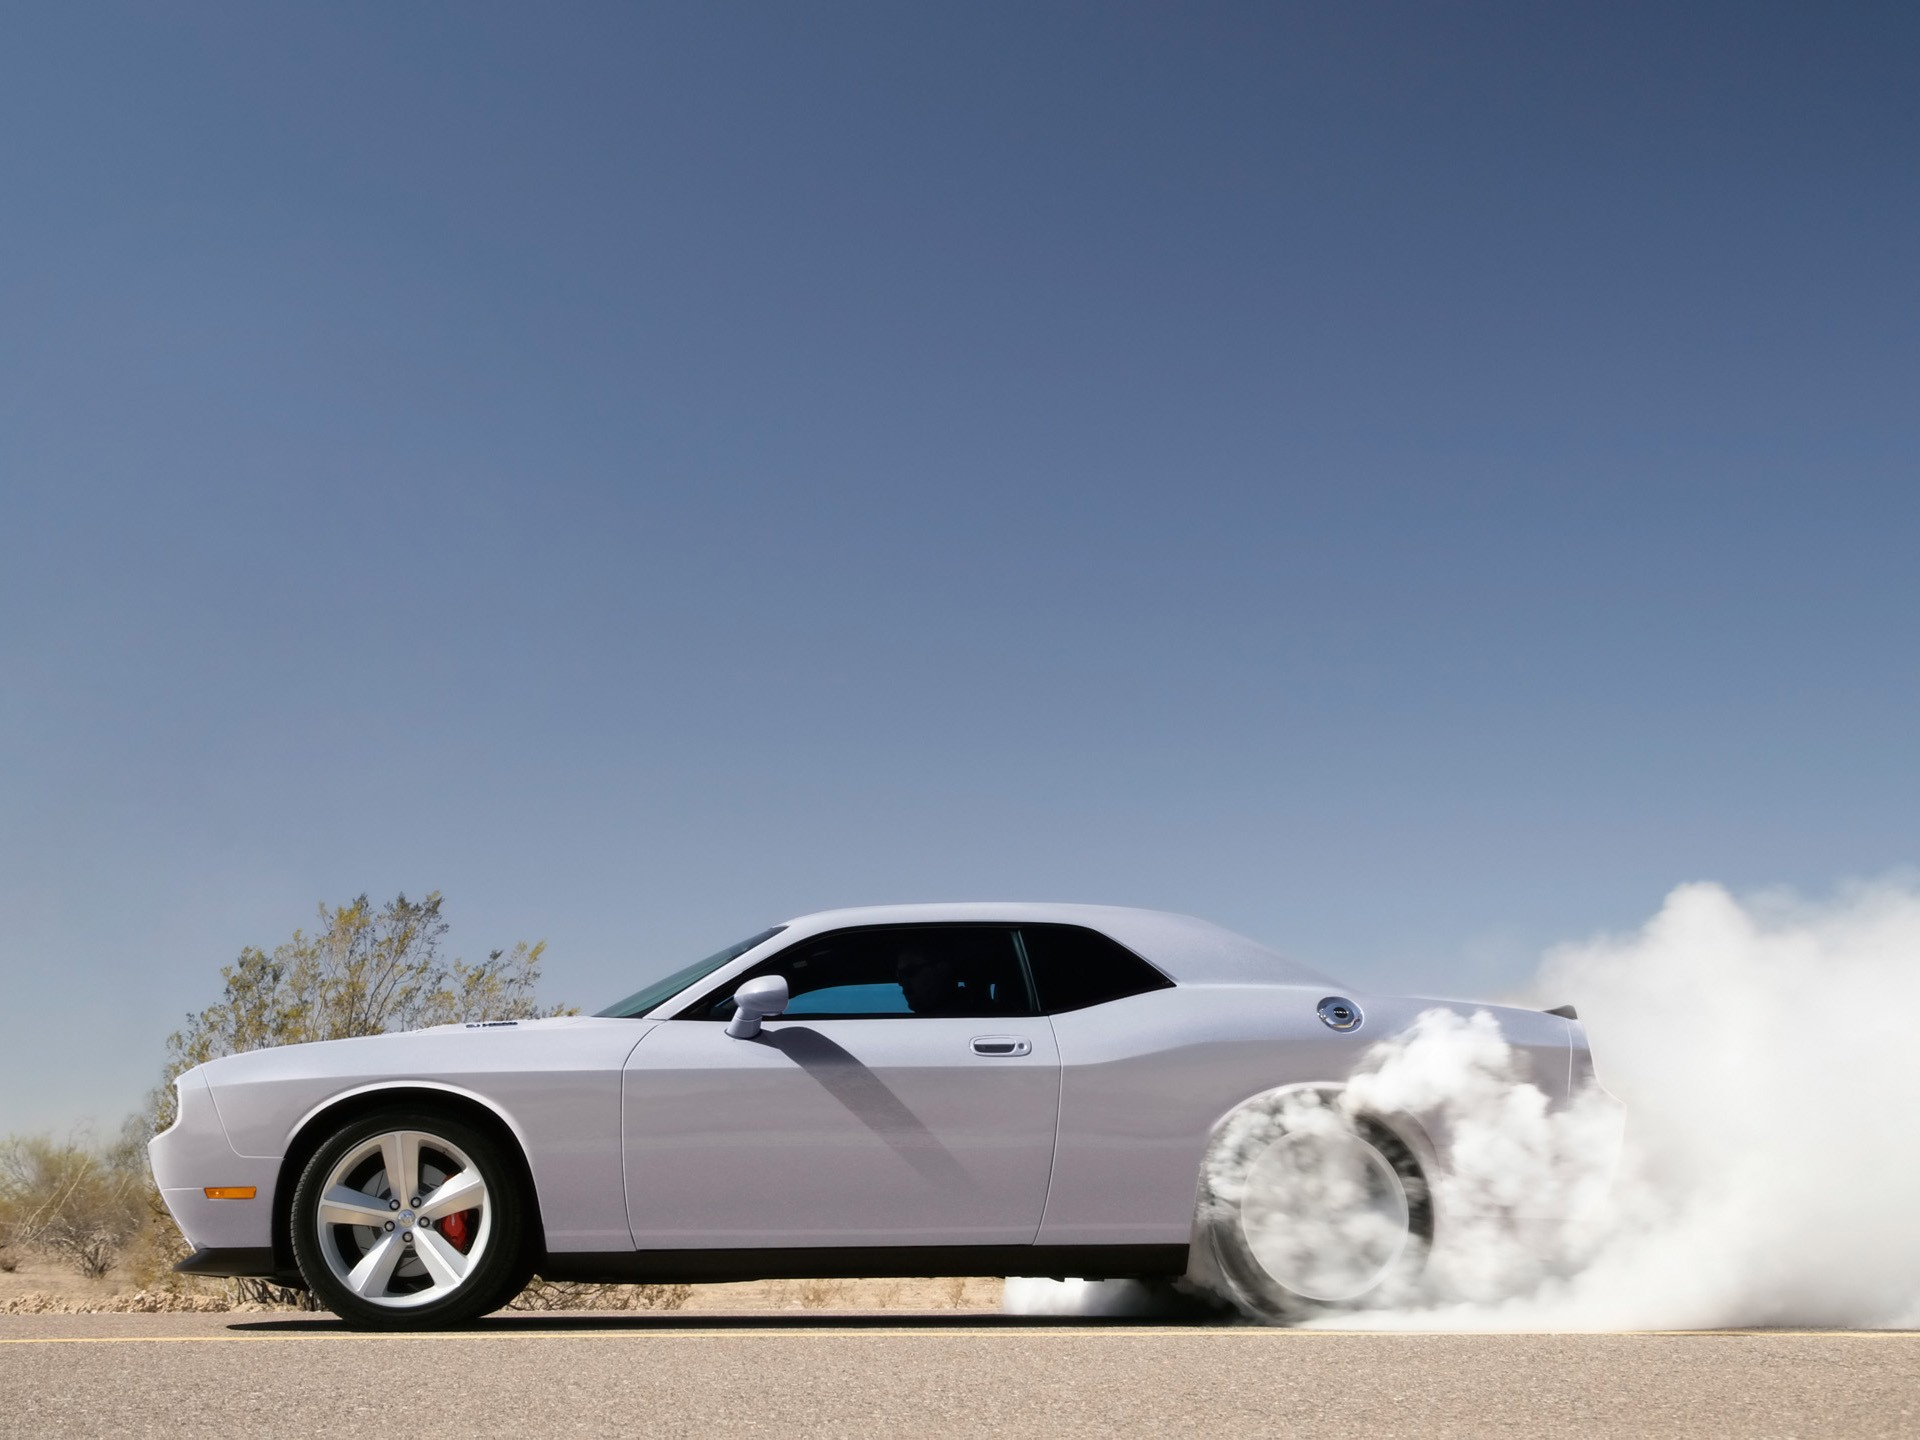 Muscle Cars Burnout Wallpapers Muscle Cars Car Burnout Dodge Challenger Smoke White